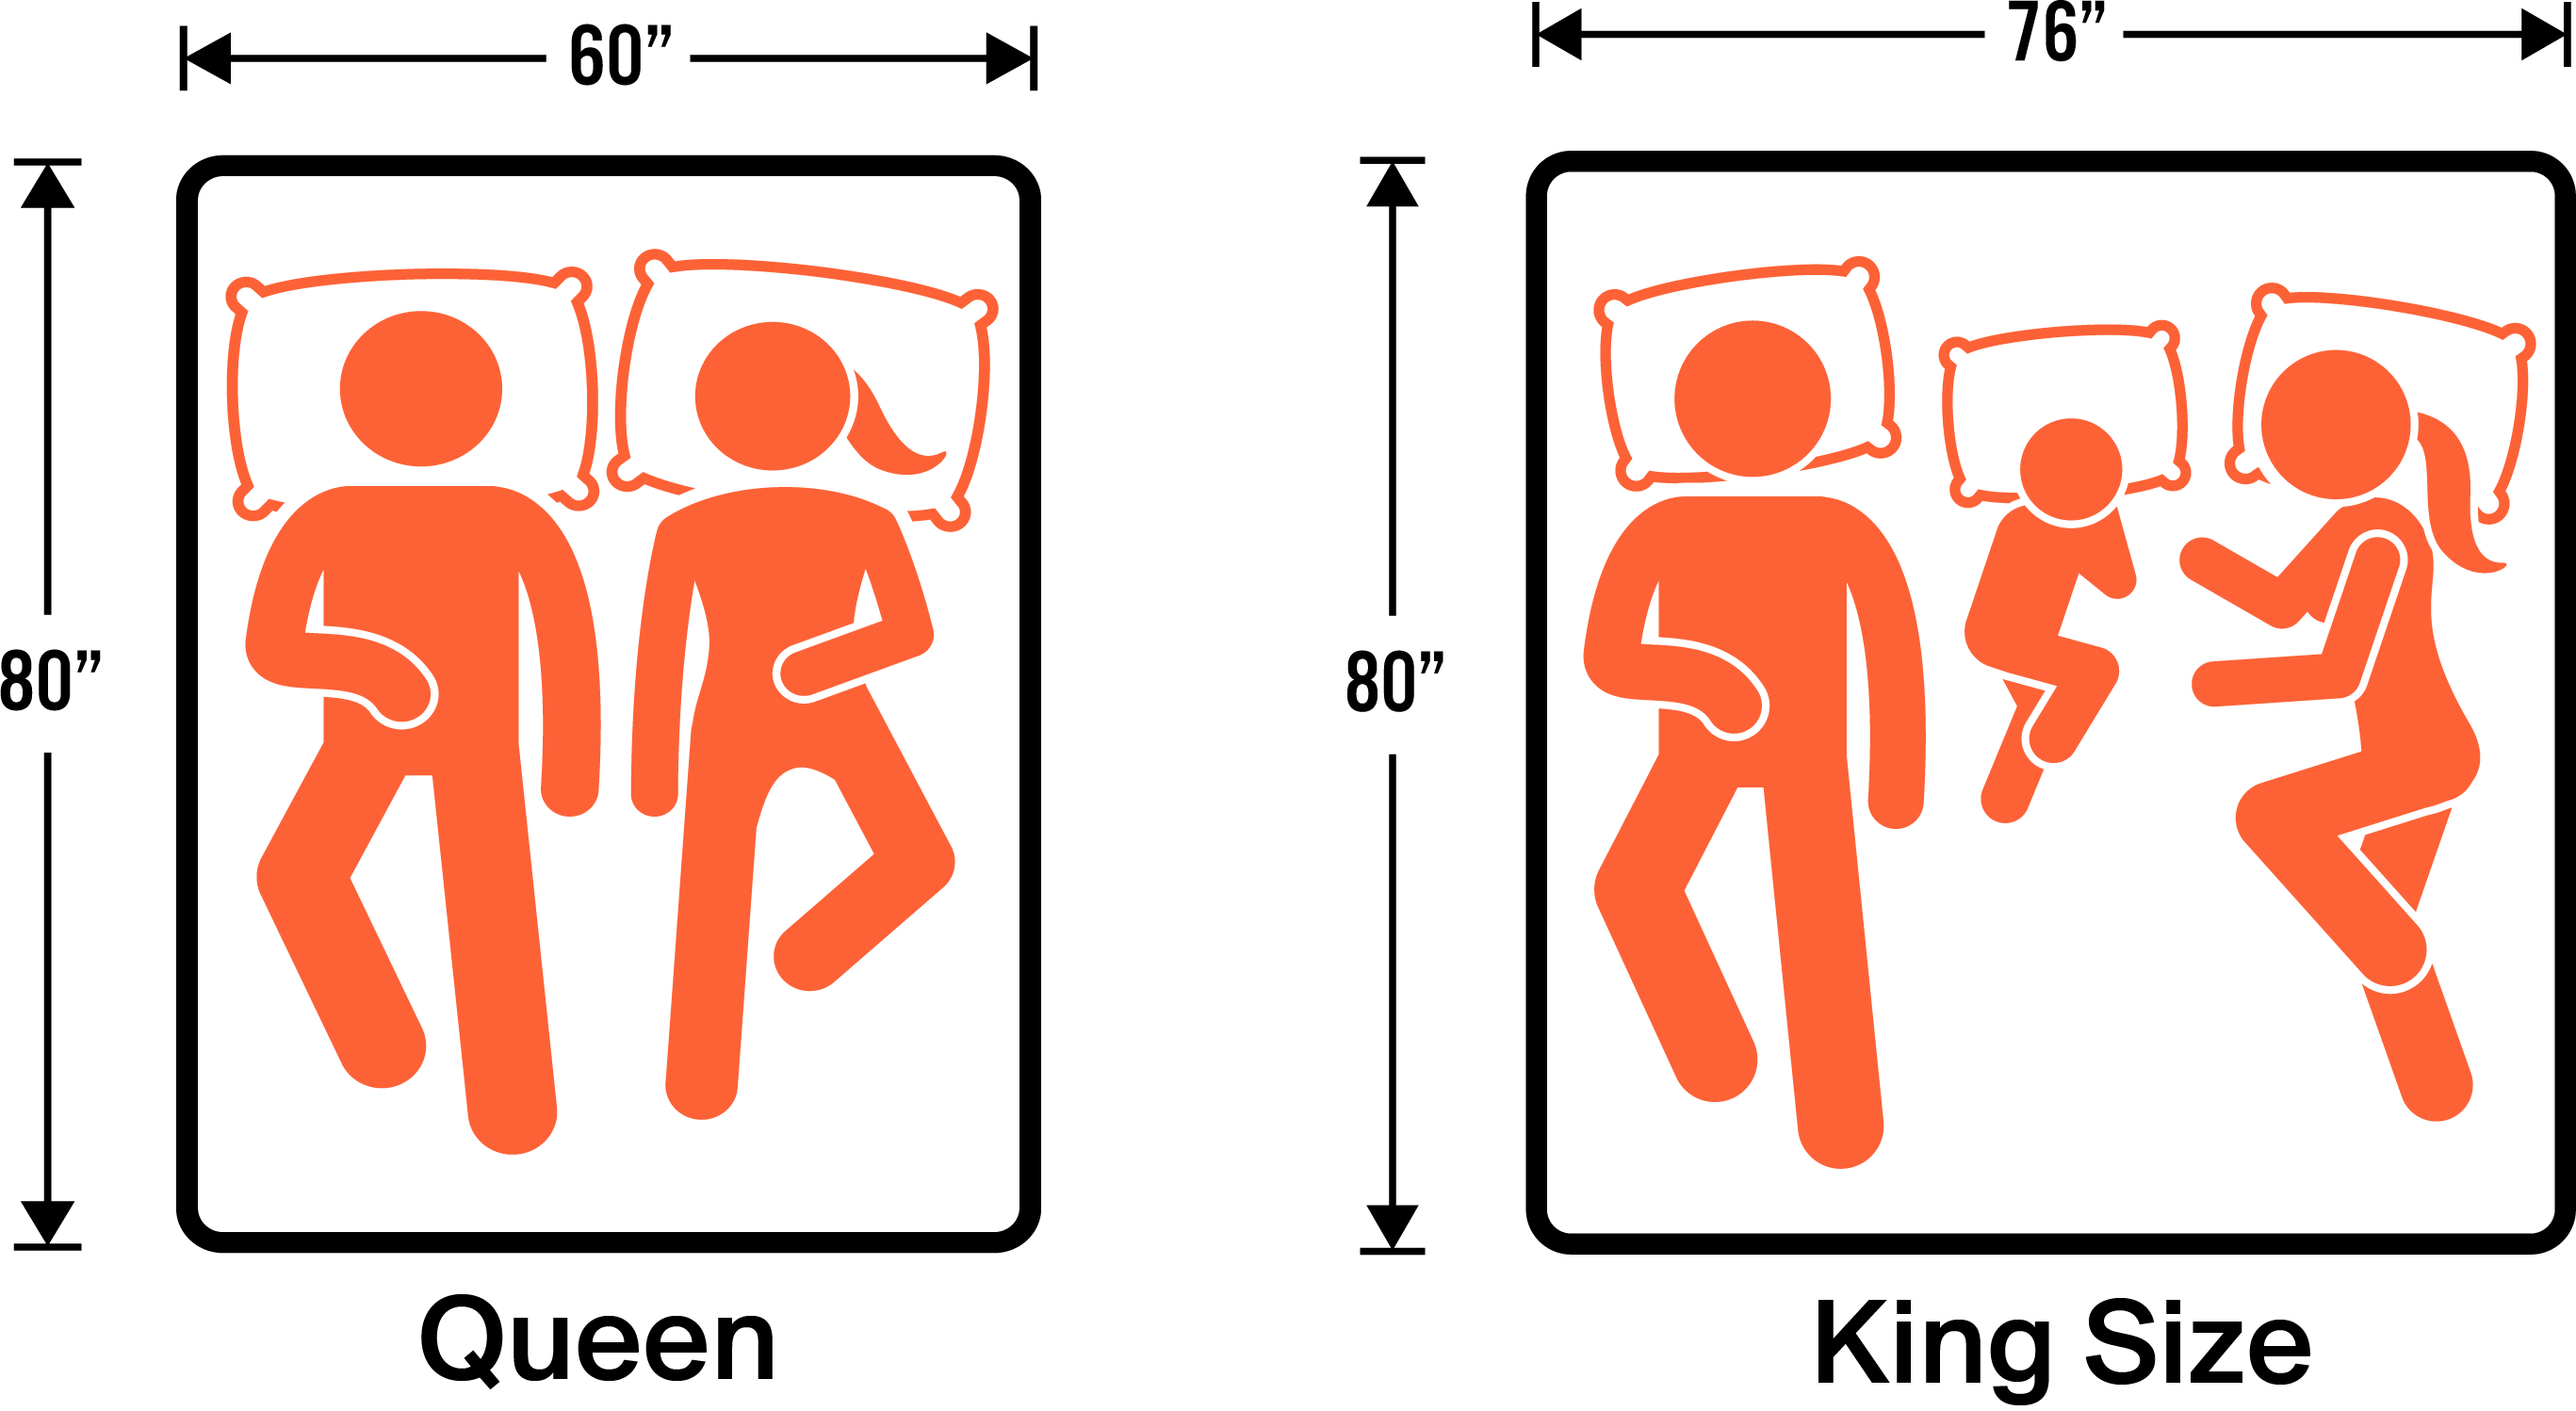 King Vs Queen Mattress Size Guide Comparison Queen Vs King